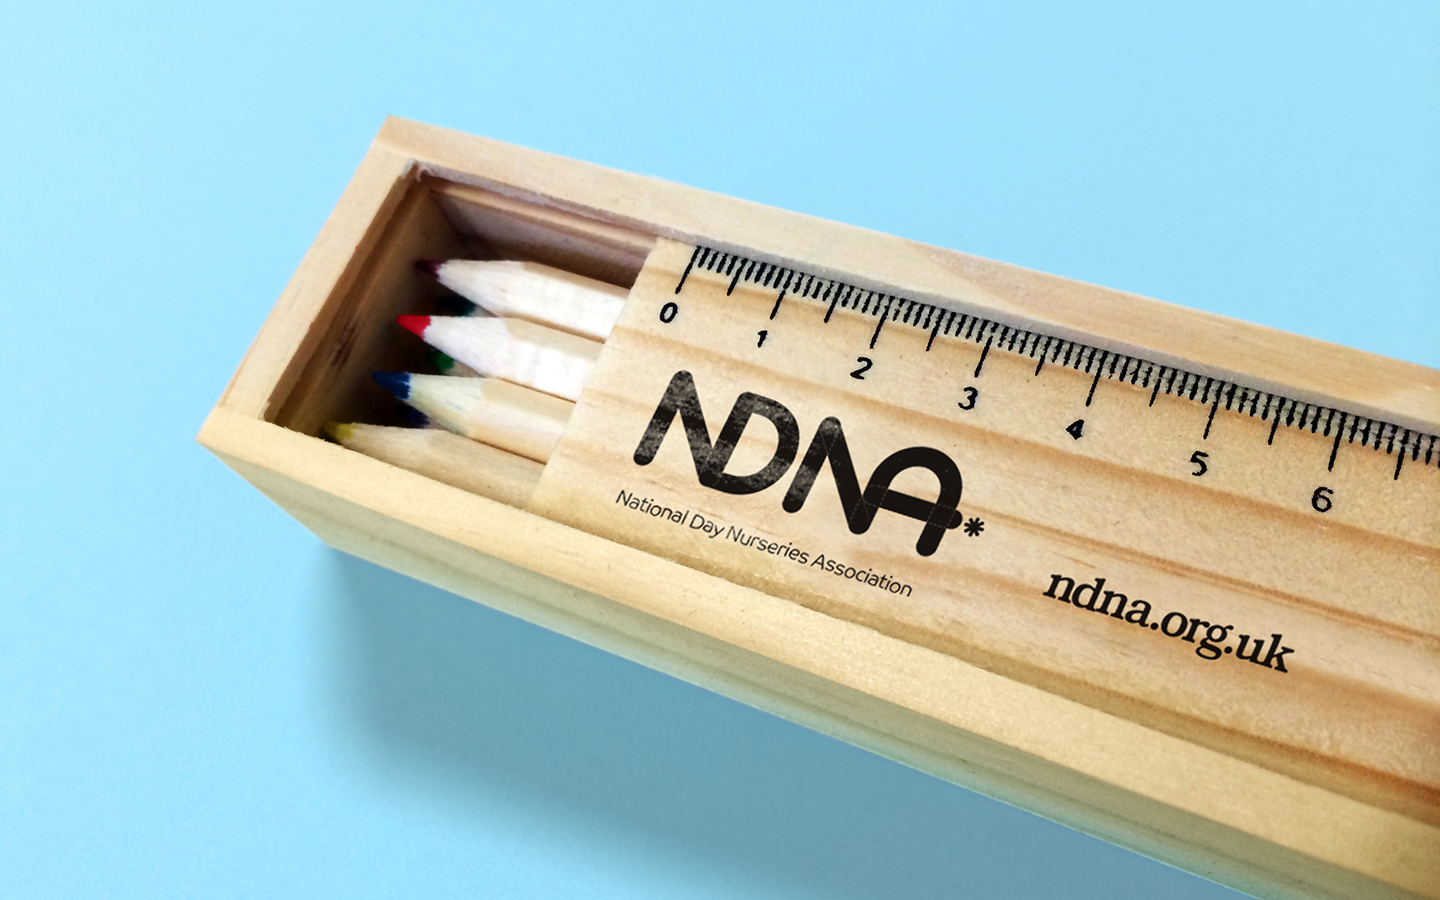 NDNA_Literature_pencil box_2